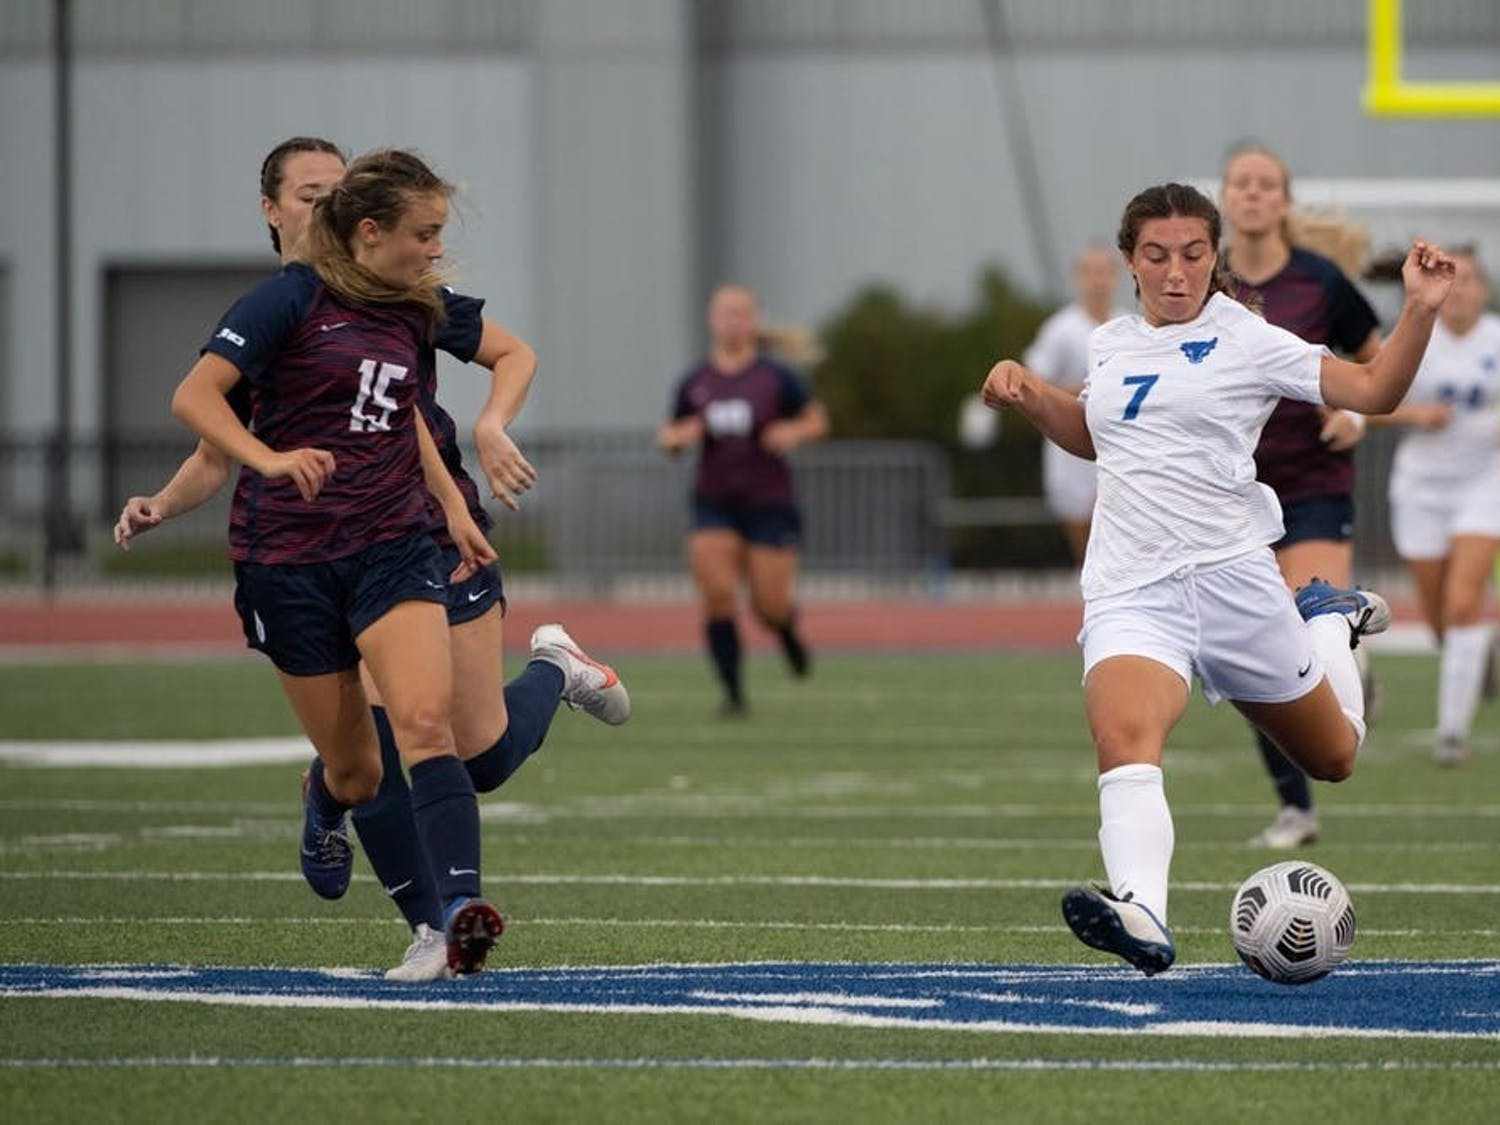 Riley Bowers (7) prepares for a kick during a women's soccer game last season.